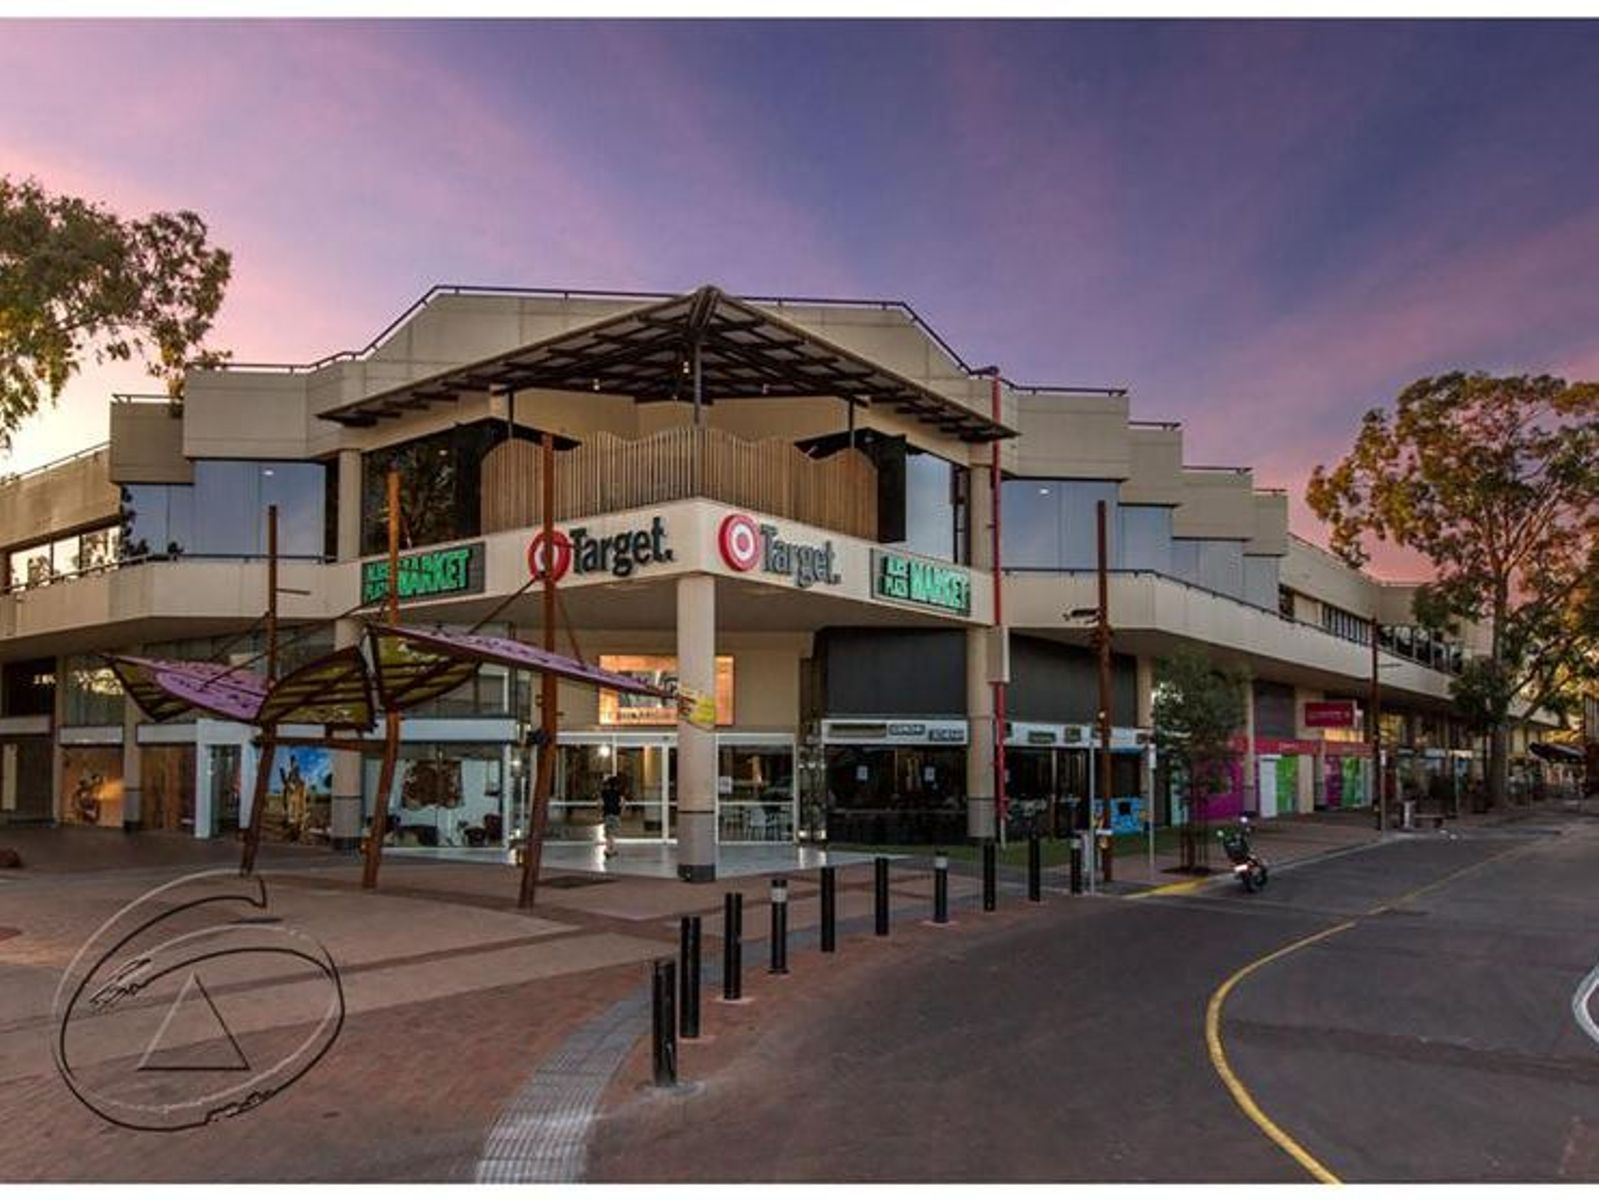 1 Alice Plaza, Alice Springs, NT 0870, Retail for Lease - FN First National  Real Estate Framptons Residential